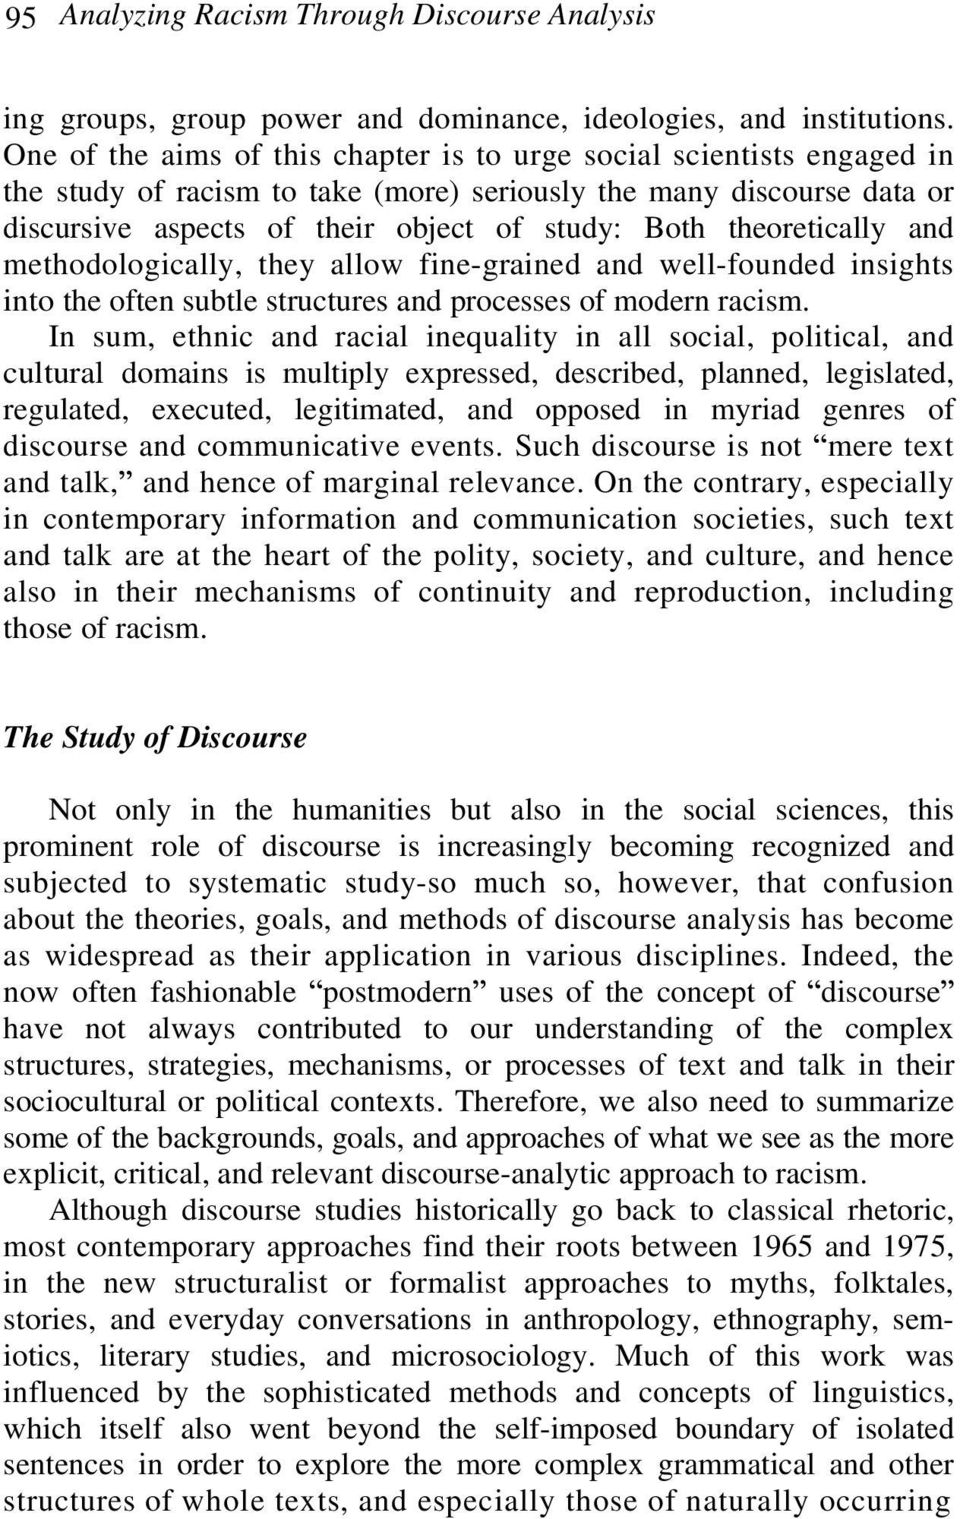 theoretically and methodologically, they allow fine-grained and well-founded insights into the often subtle structures and processes of modern racism.